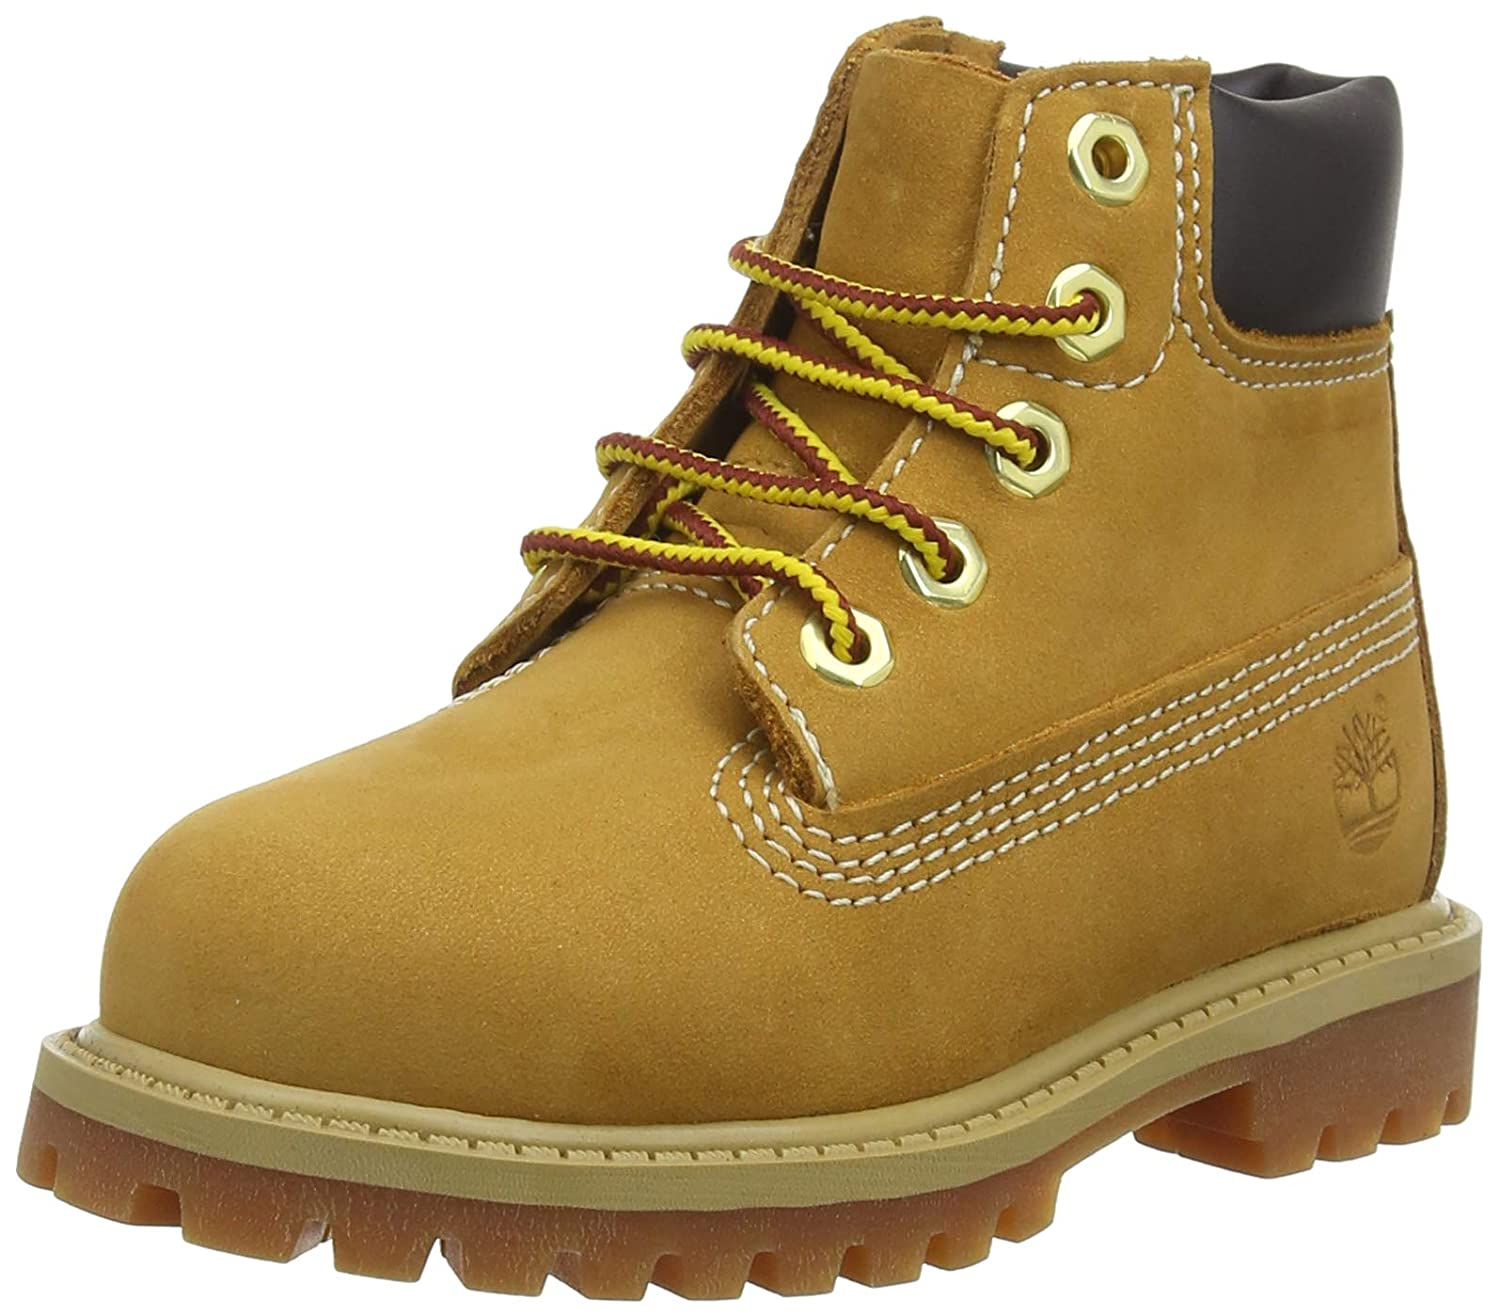 Timberland Boys' 6 Inch Classic Boot Wheat Nubuck 6 Big Kid